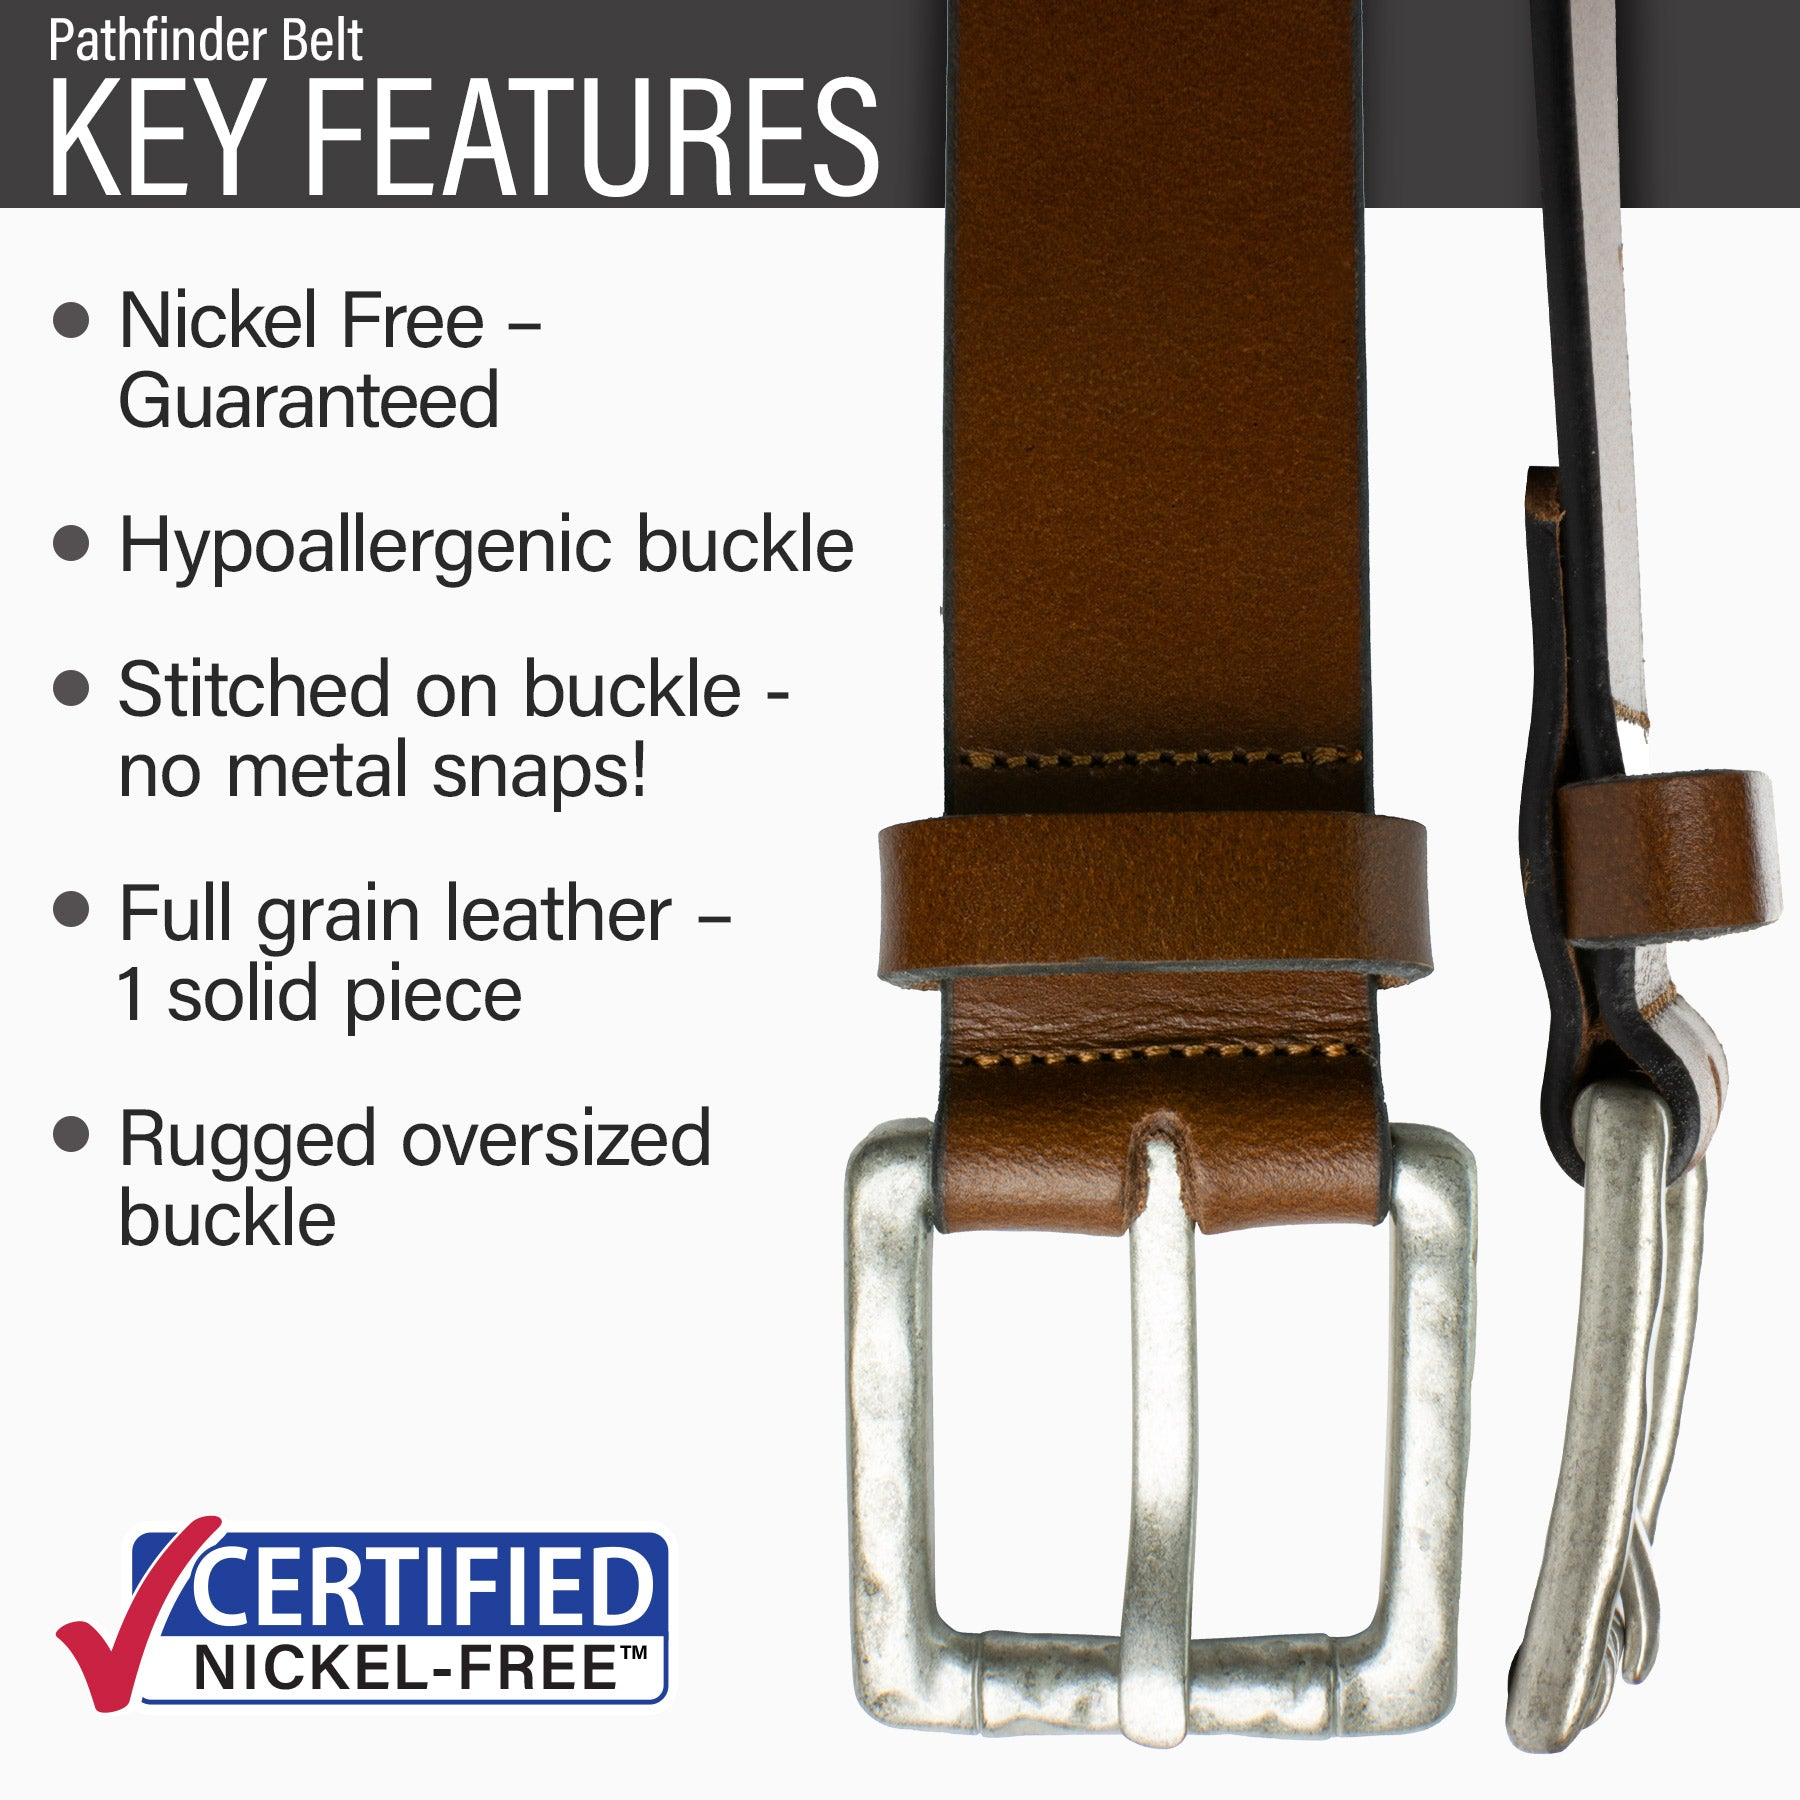 Key features of Pathfinder Nickel Free Brown Belt | Hypoallergenic buckle, stitched on buckle, full grain leather, rugged oversized buckle.